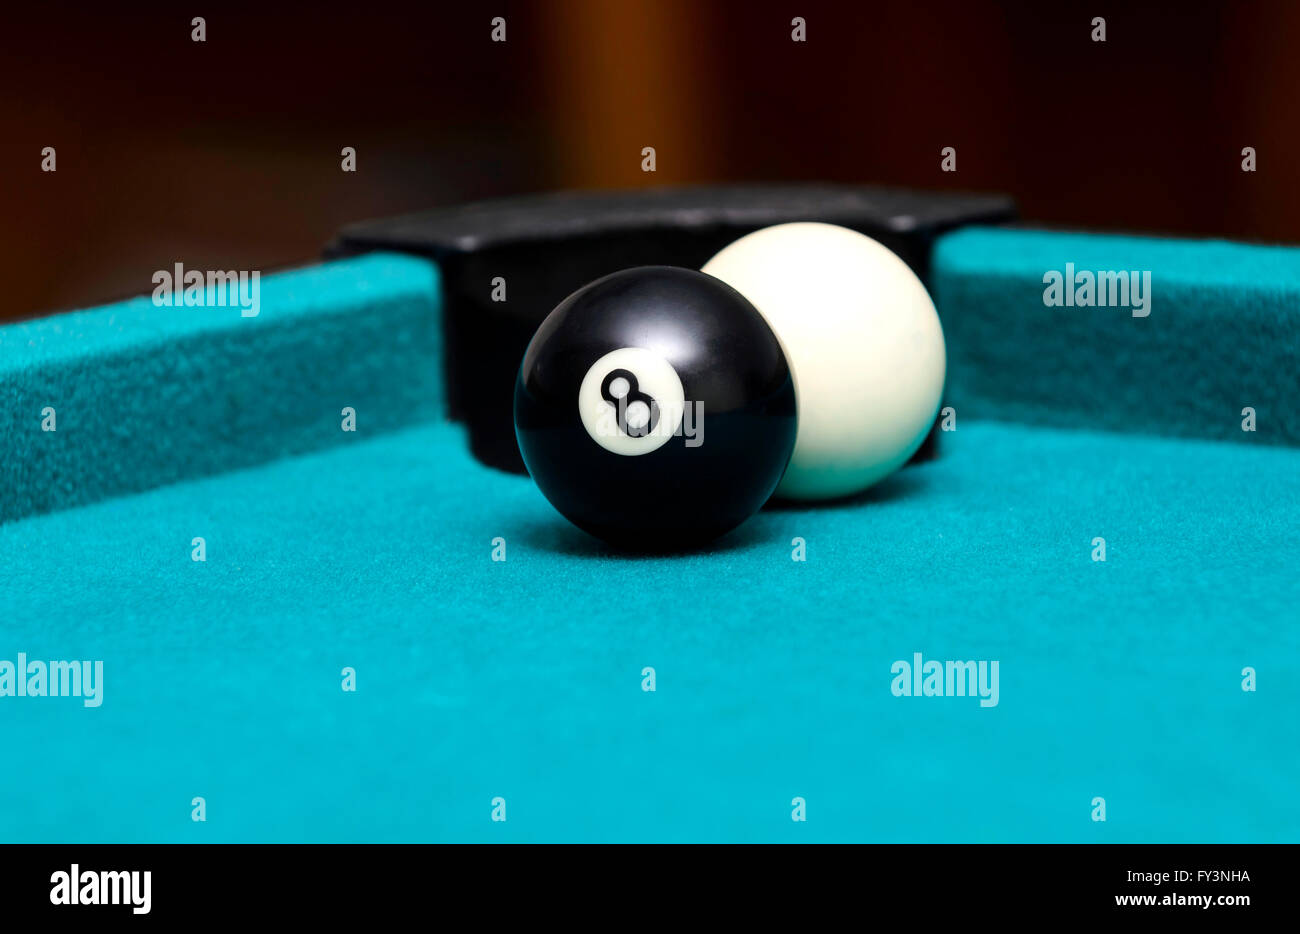 Eight ball and cue ball on pool table - Stock Image